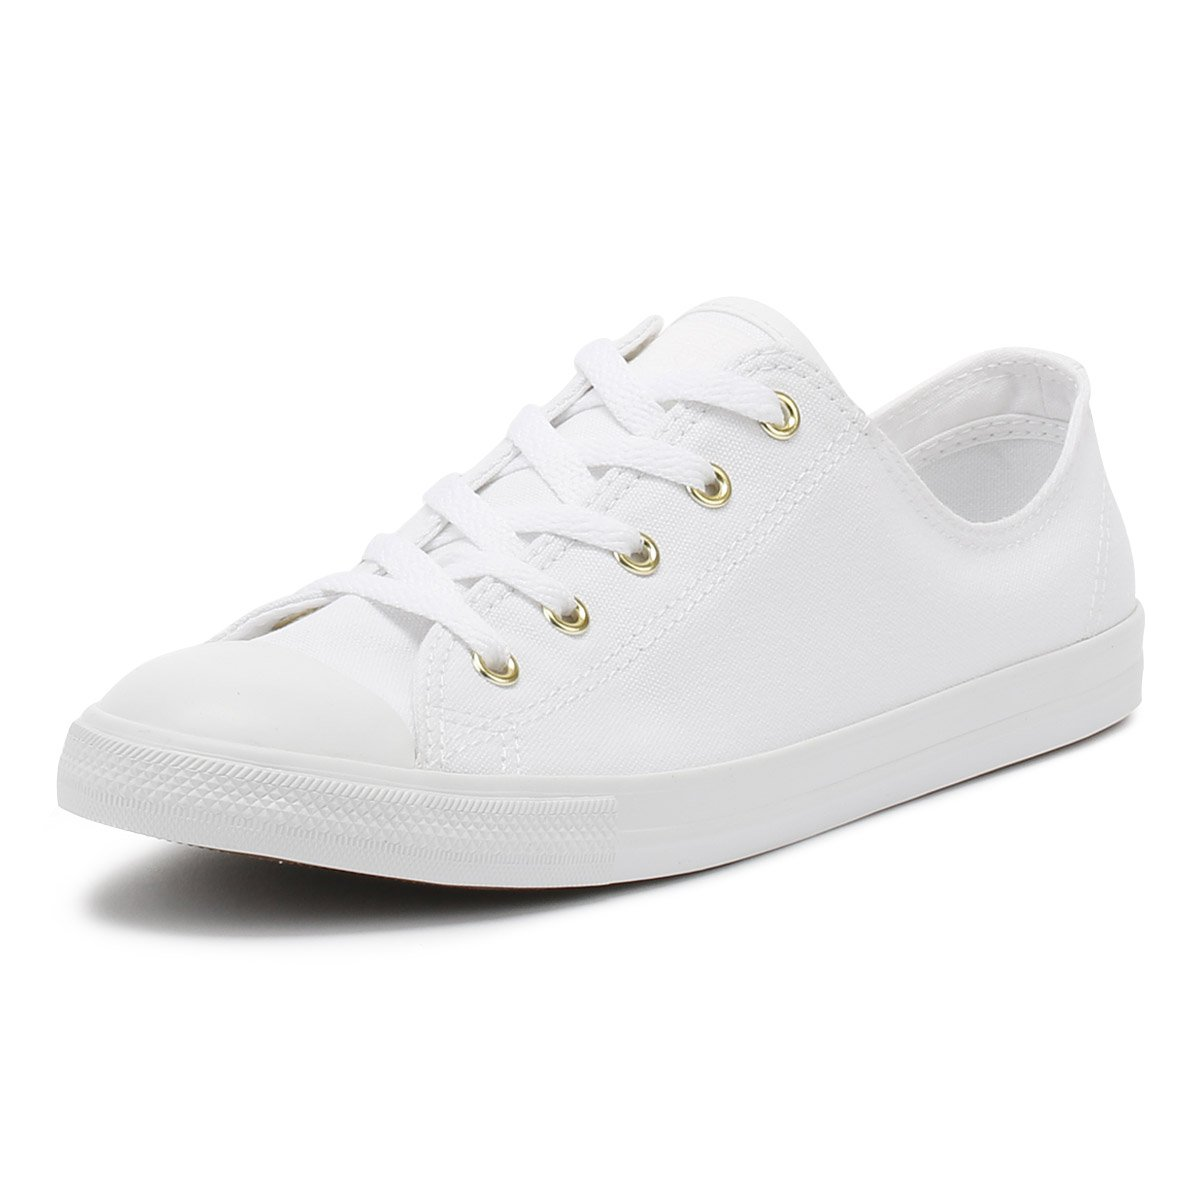 589598c9e8a3 Converse Women s Chuck Taylor CTAS Dainty Ox Low-Top Sneakers   Amazon.co.uk  Shoes   Bags